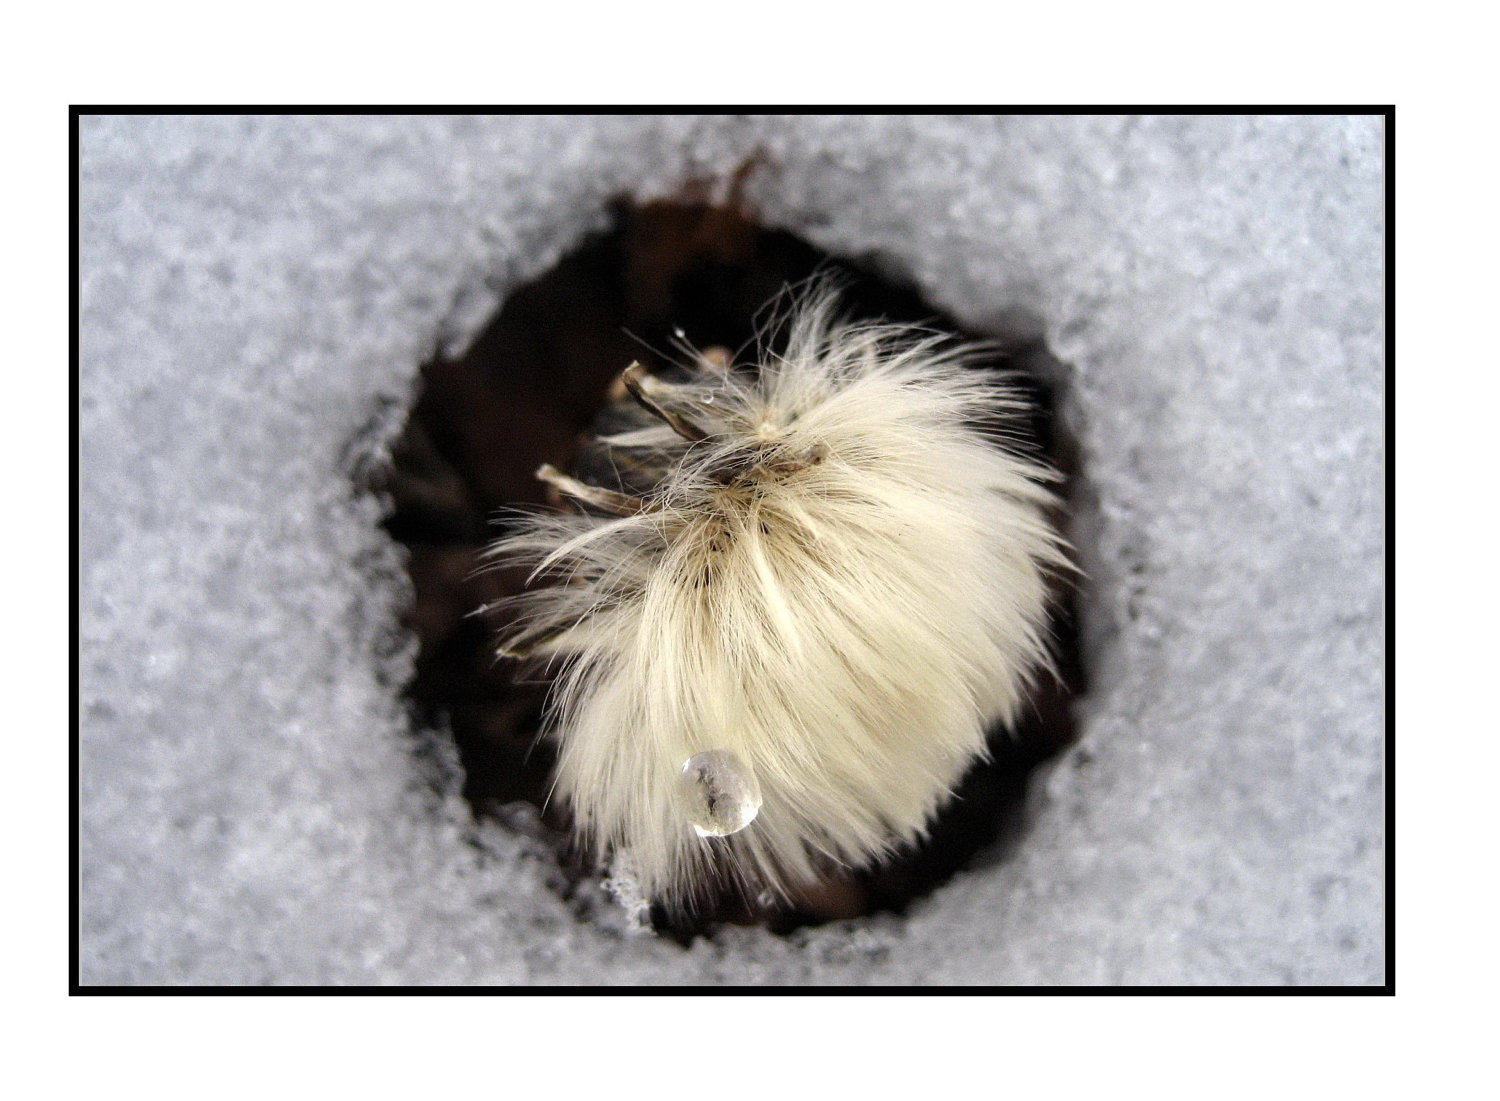 Winter Dandelion in Melting Snow